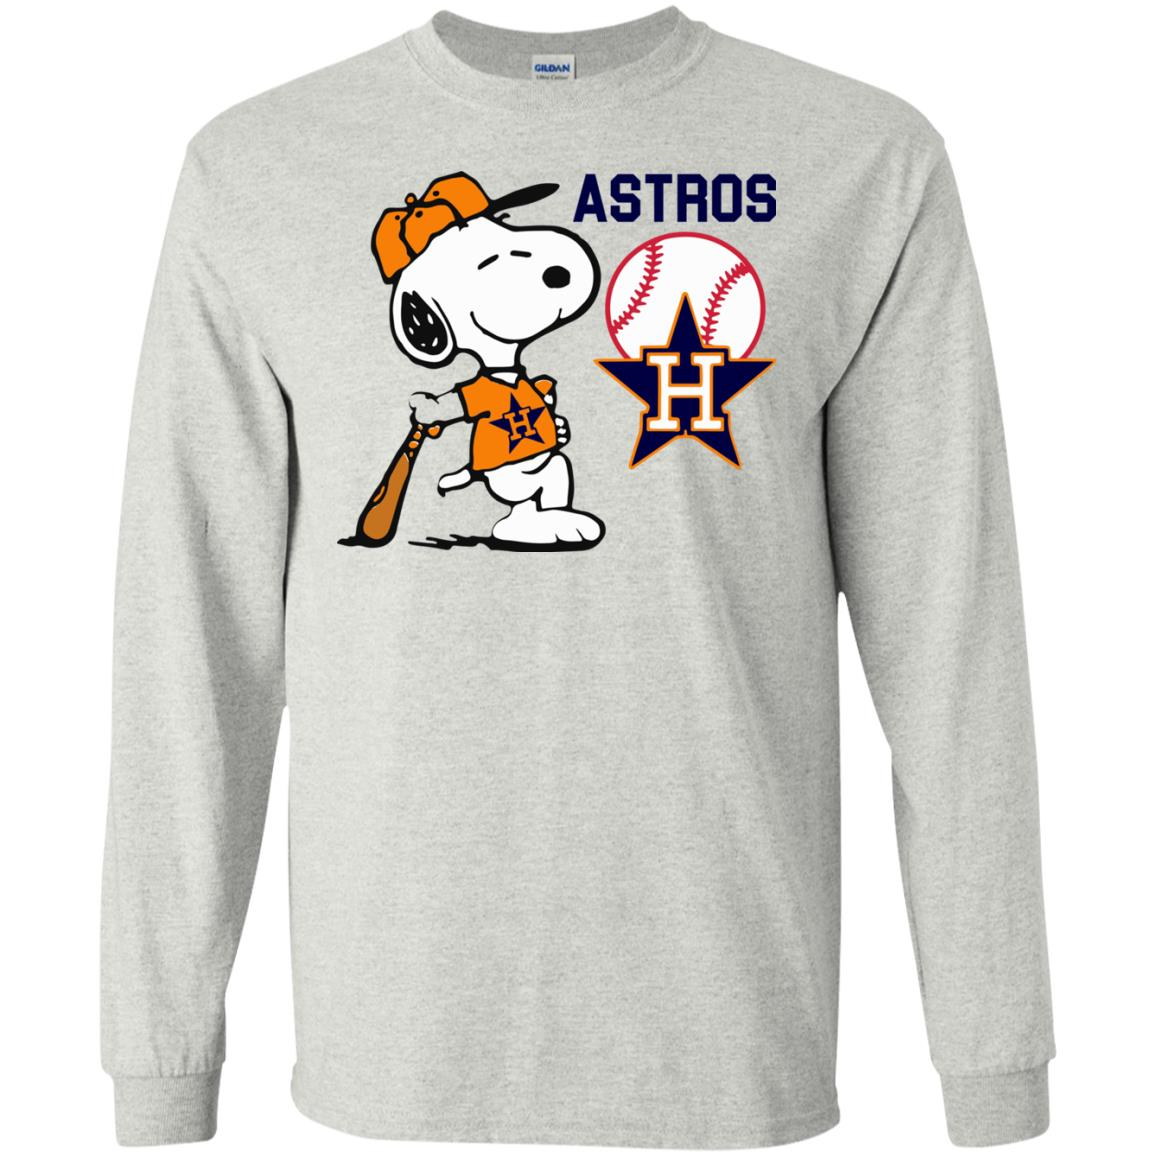 image 966 - Snoopy Houston Astros Shirt, Sweater, Hoodie